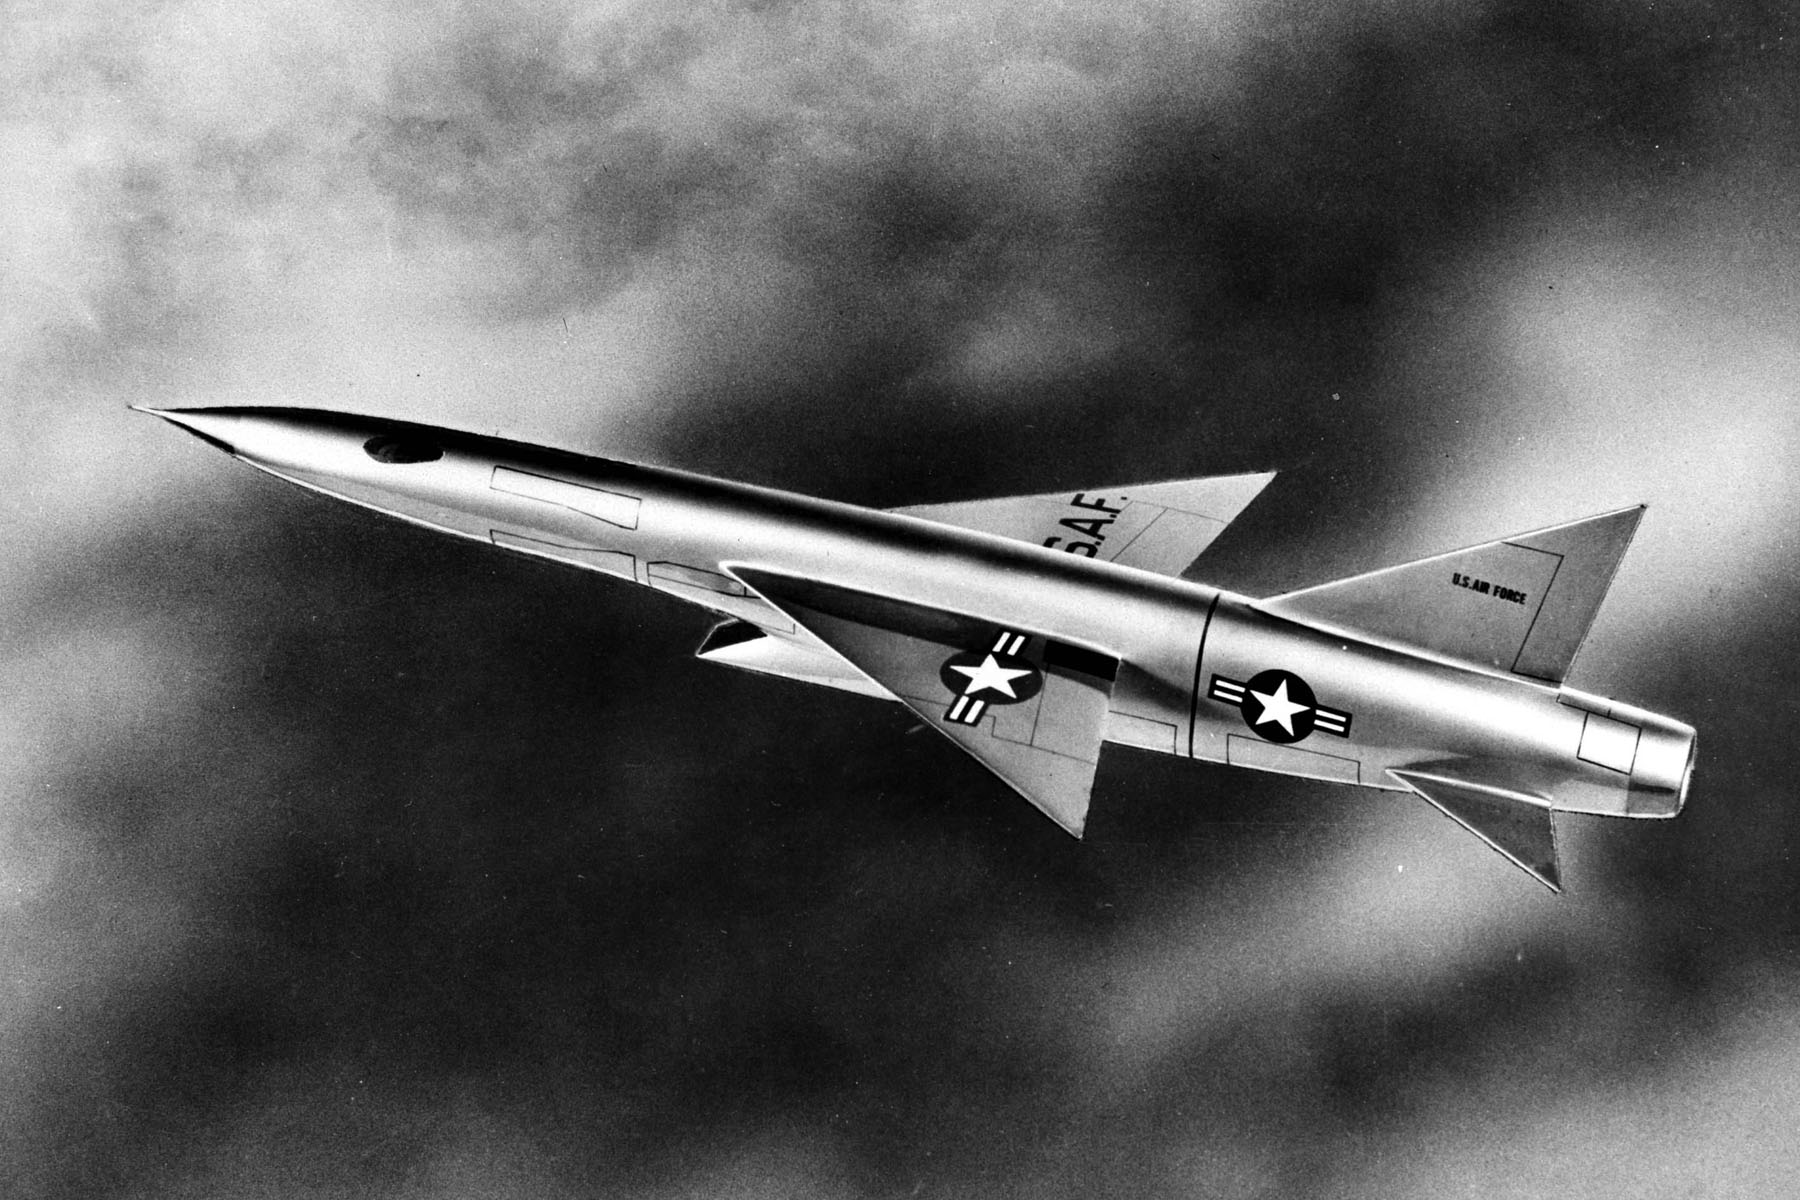 Republic XF-103 Source: U.S. Air Force